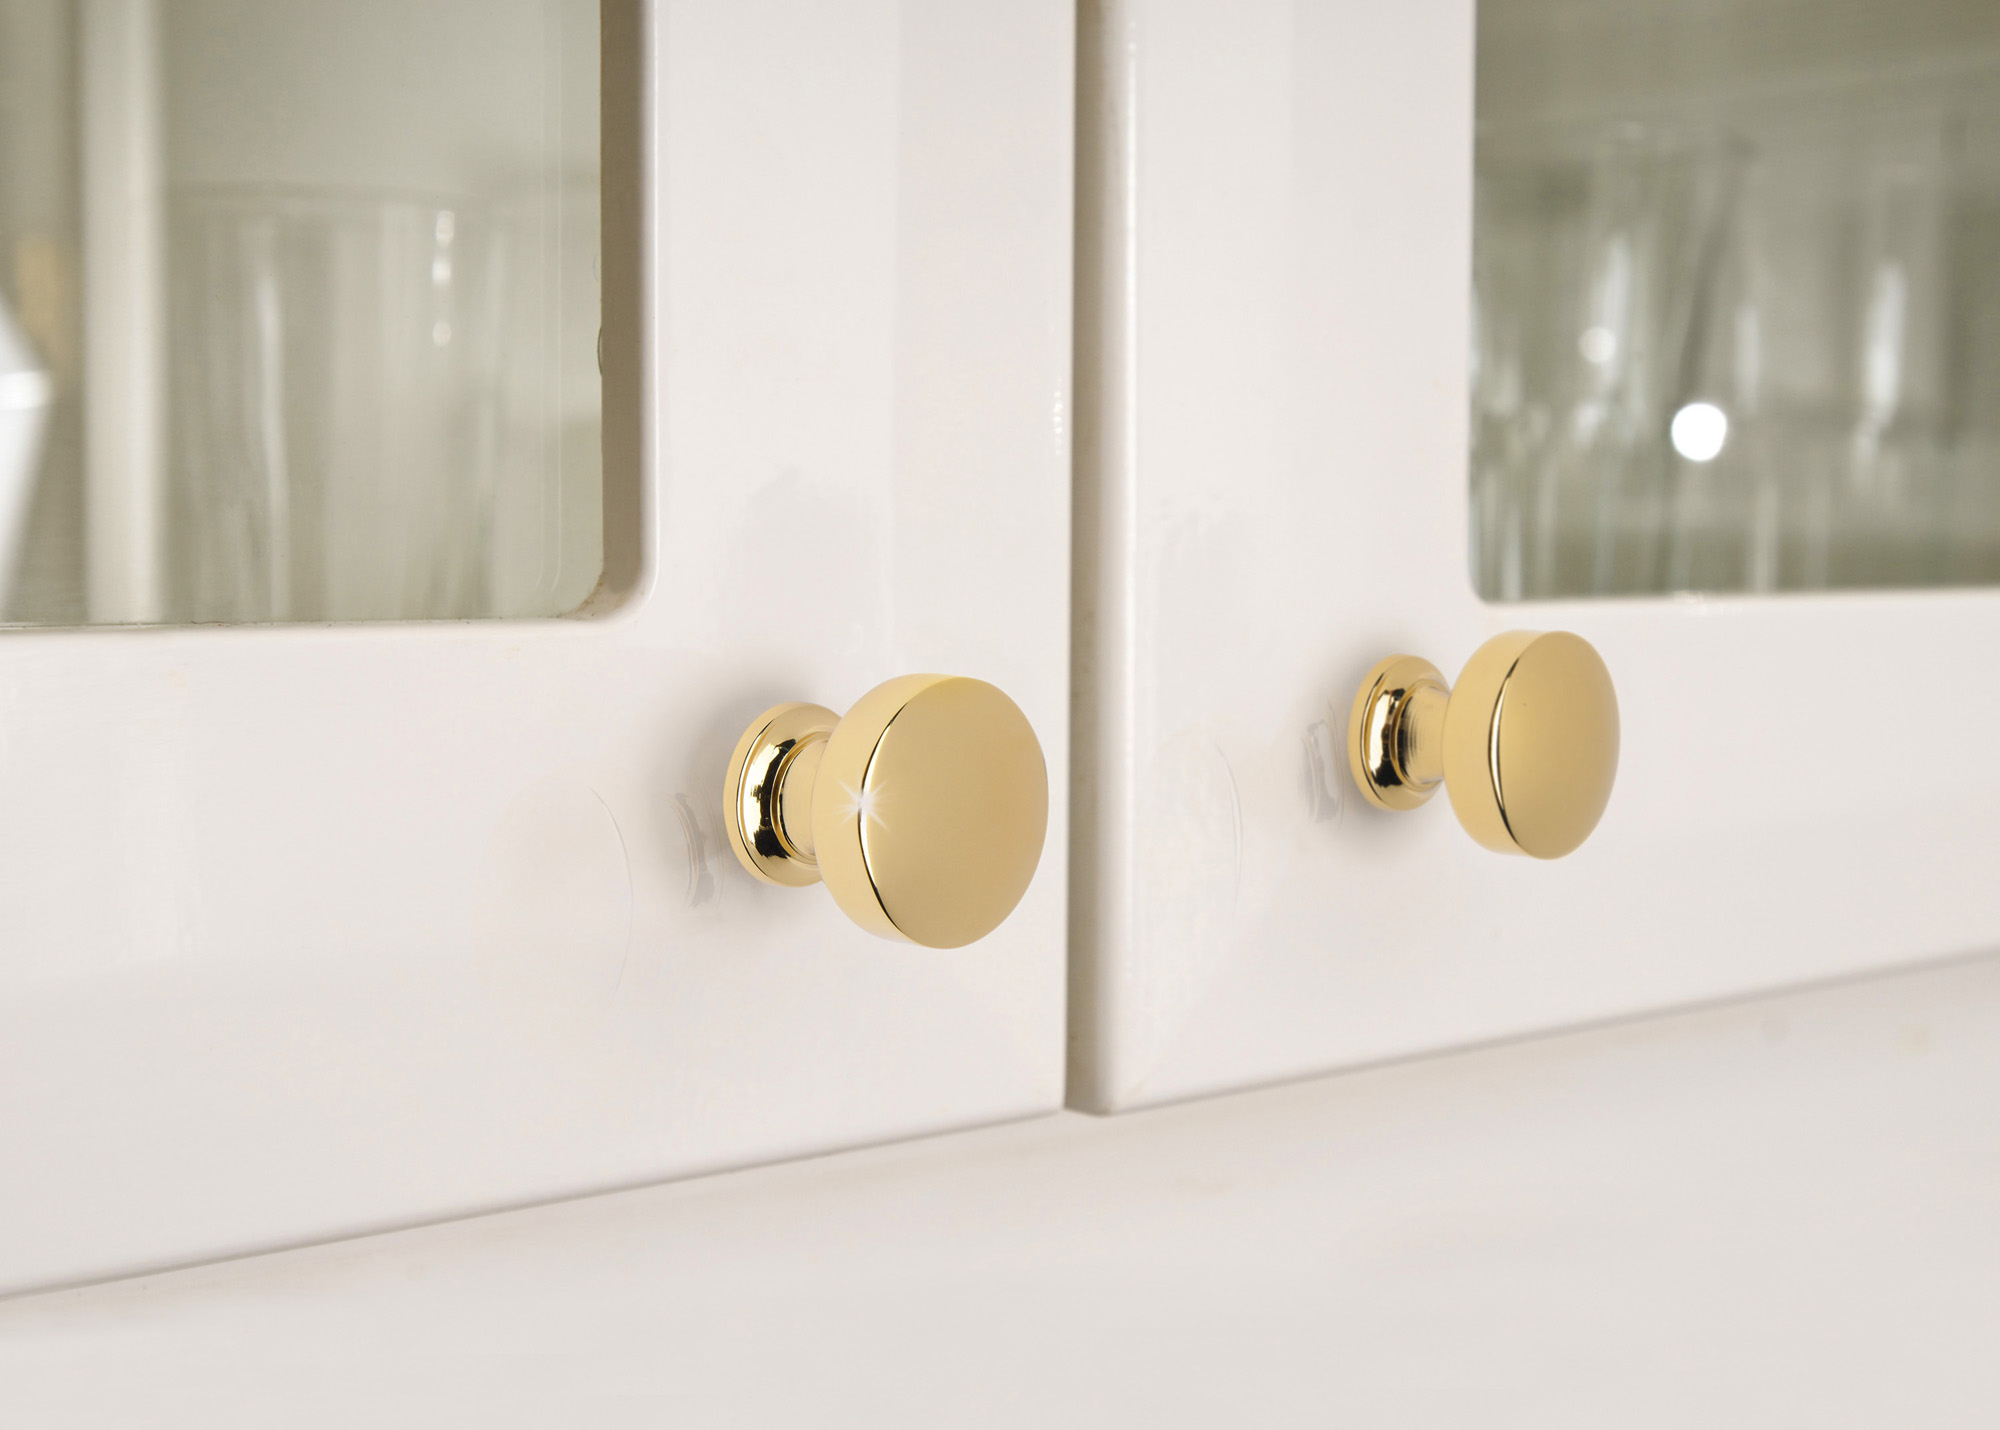 Decorative Hardware for the Perfect Finishing Touch